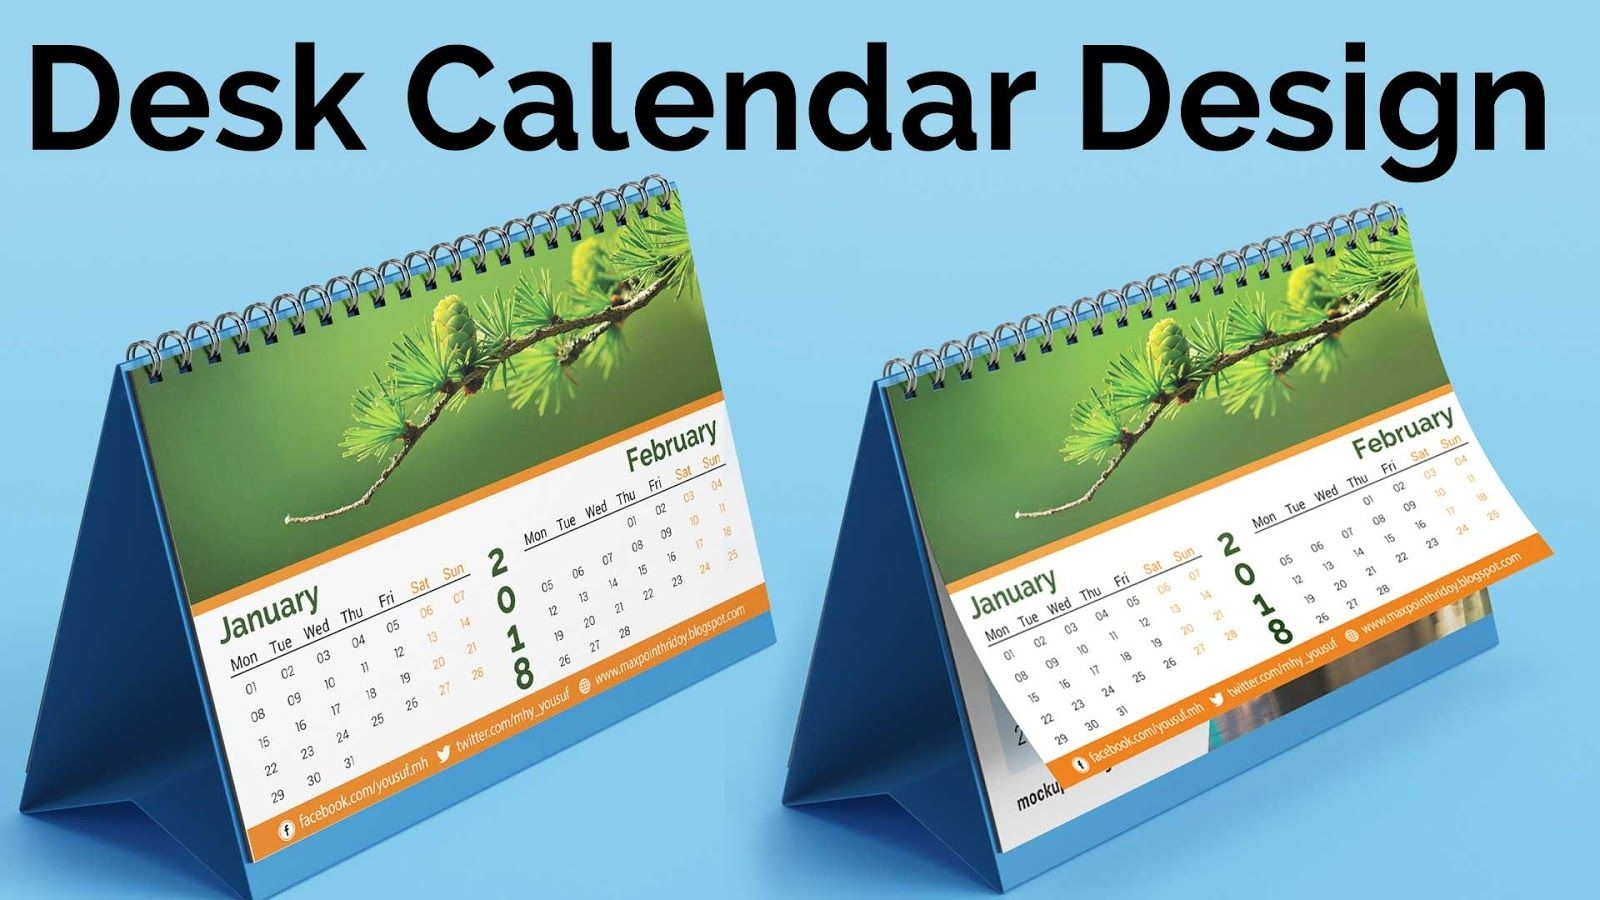 calendar design 2018 | how to create a desk calendar in